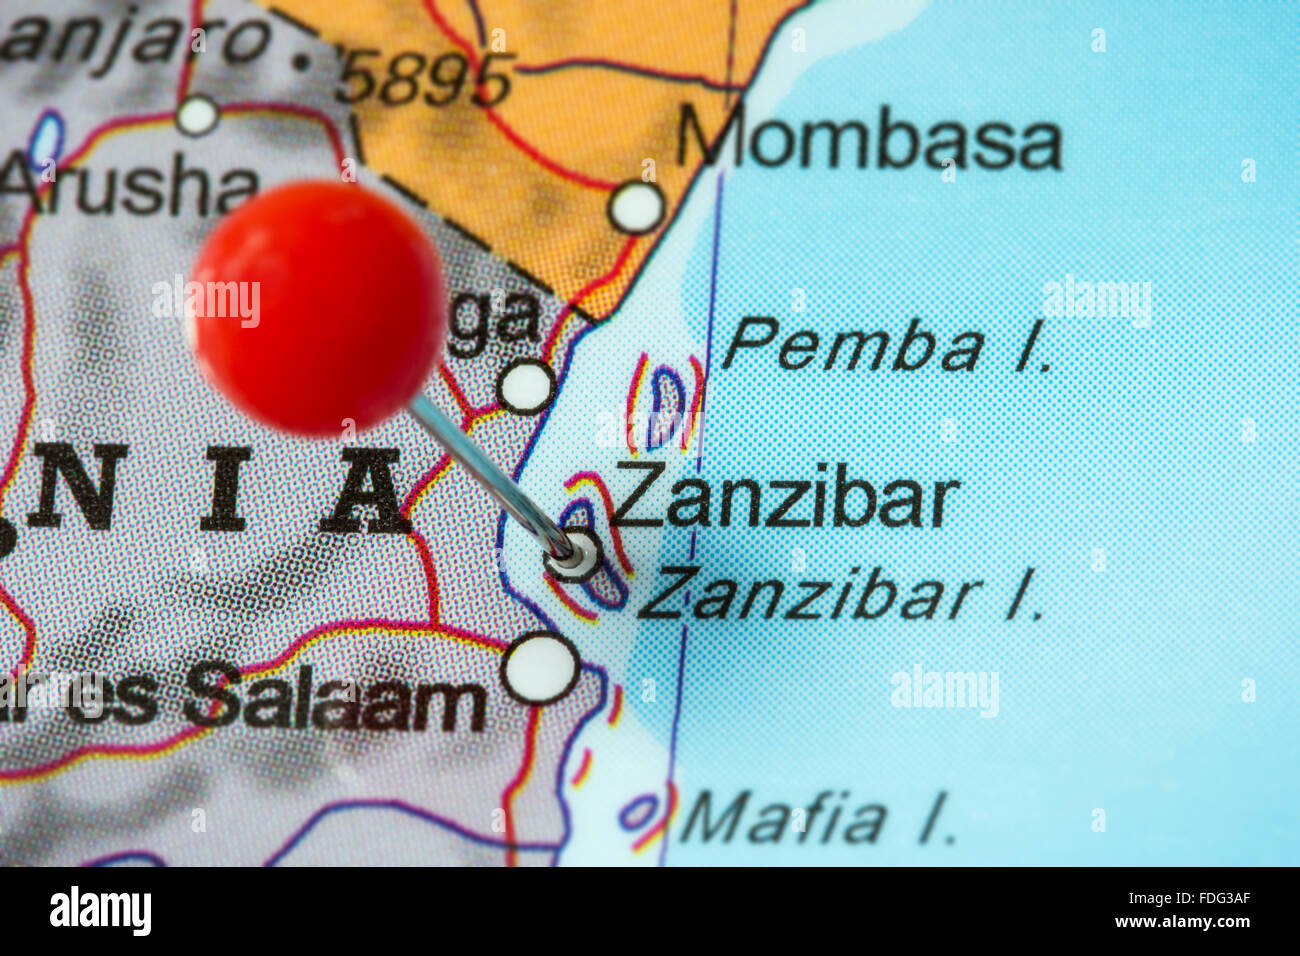 Close-up of a red pushpin in a map of Zanzibar, Tanzania. - Stock Image